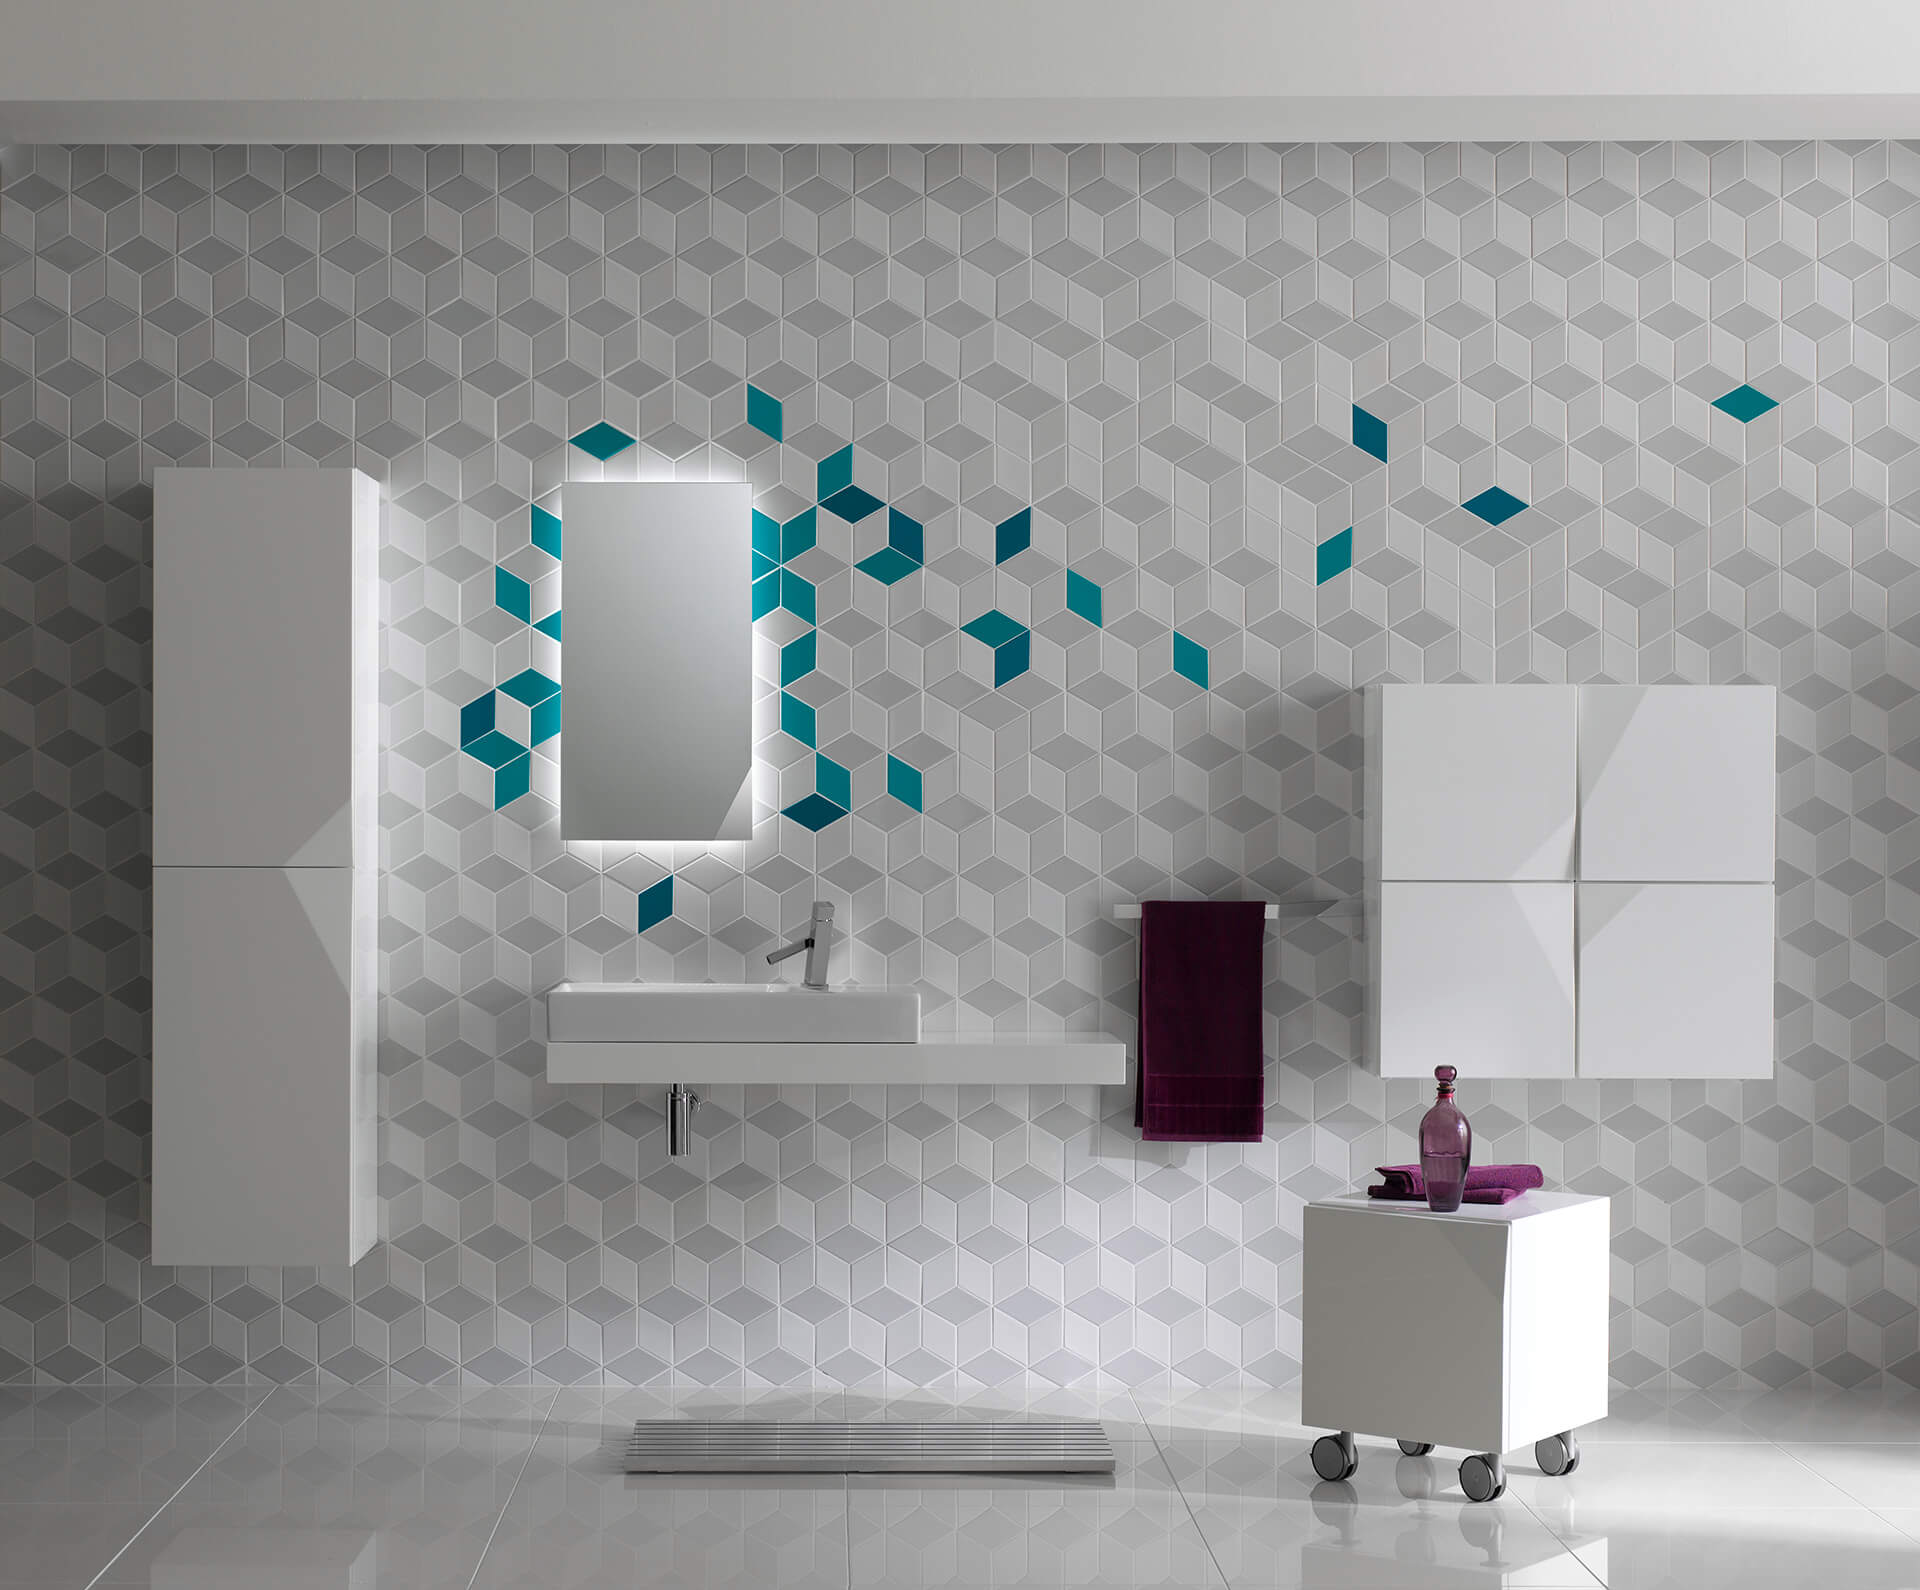 Cube tiles from Cube & Dot collection for KALE | Made in Turkey: Curated by Arhan Kayar | STIRworld